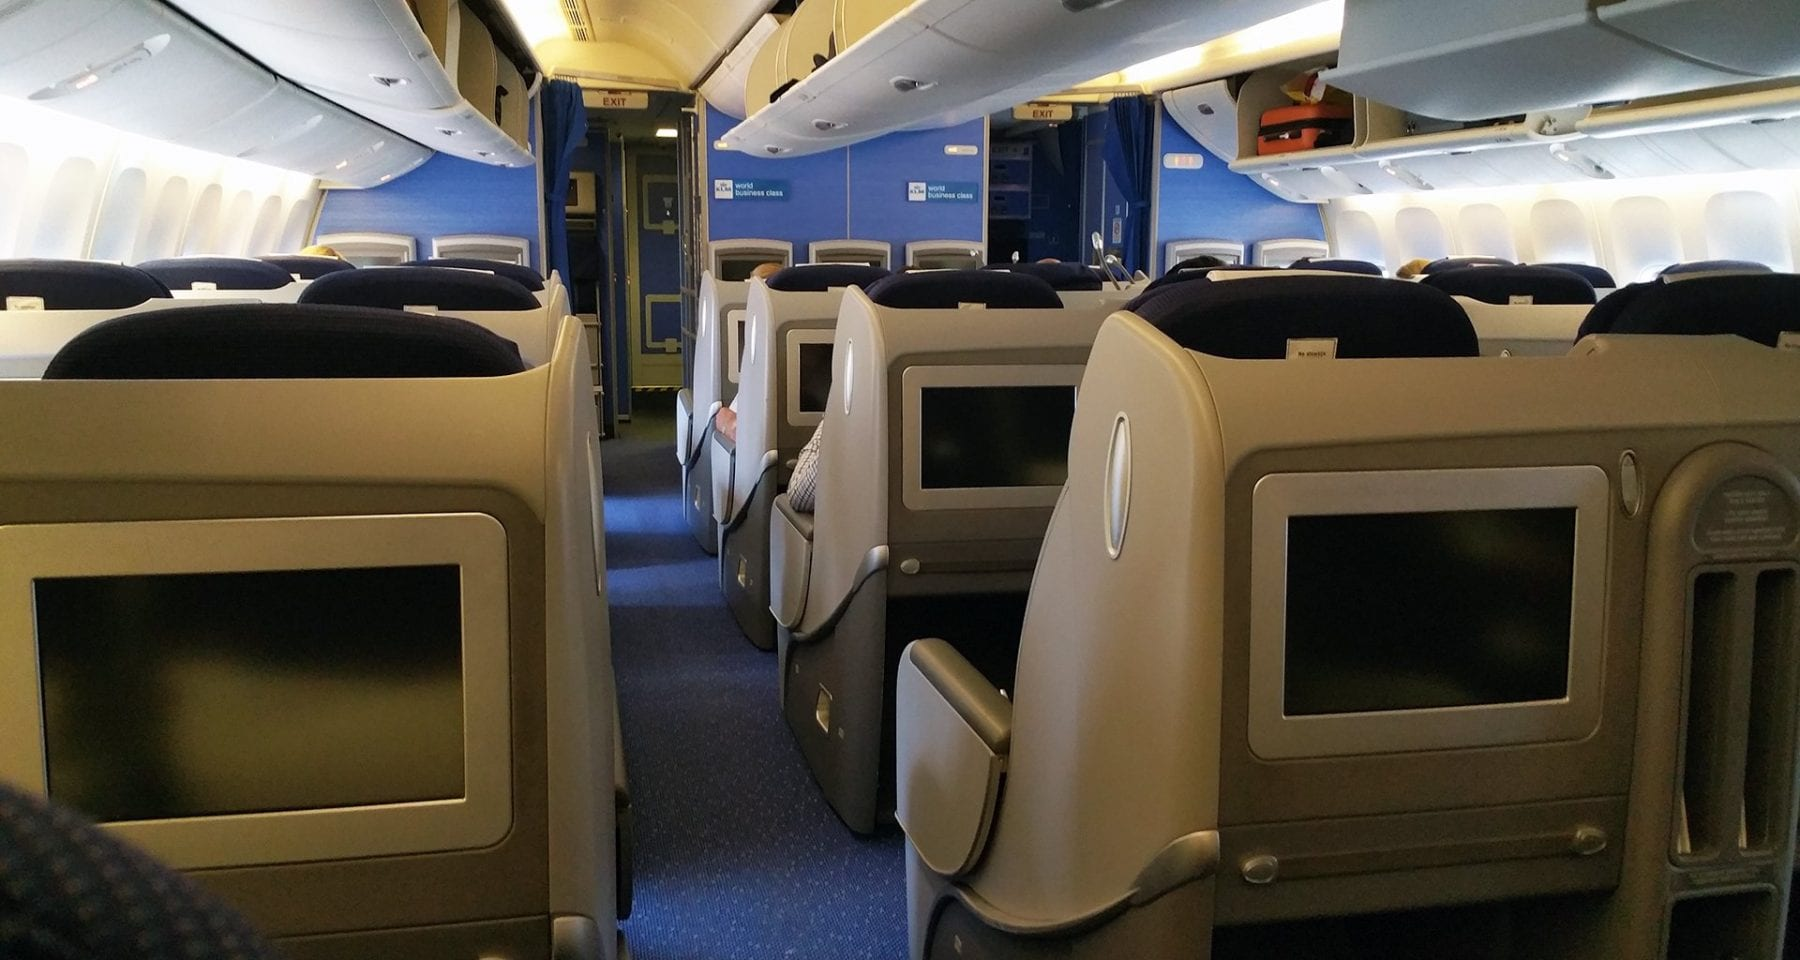 KLM Boeing 777 interior business class